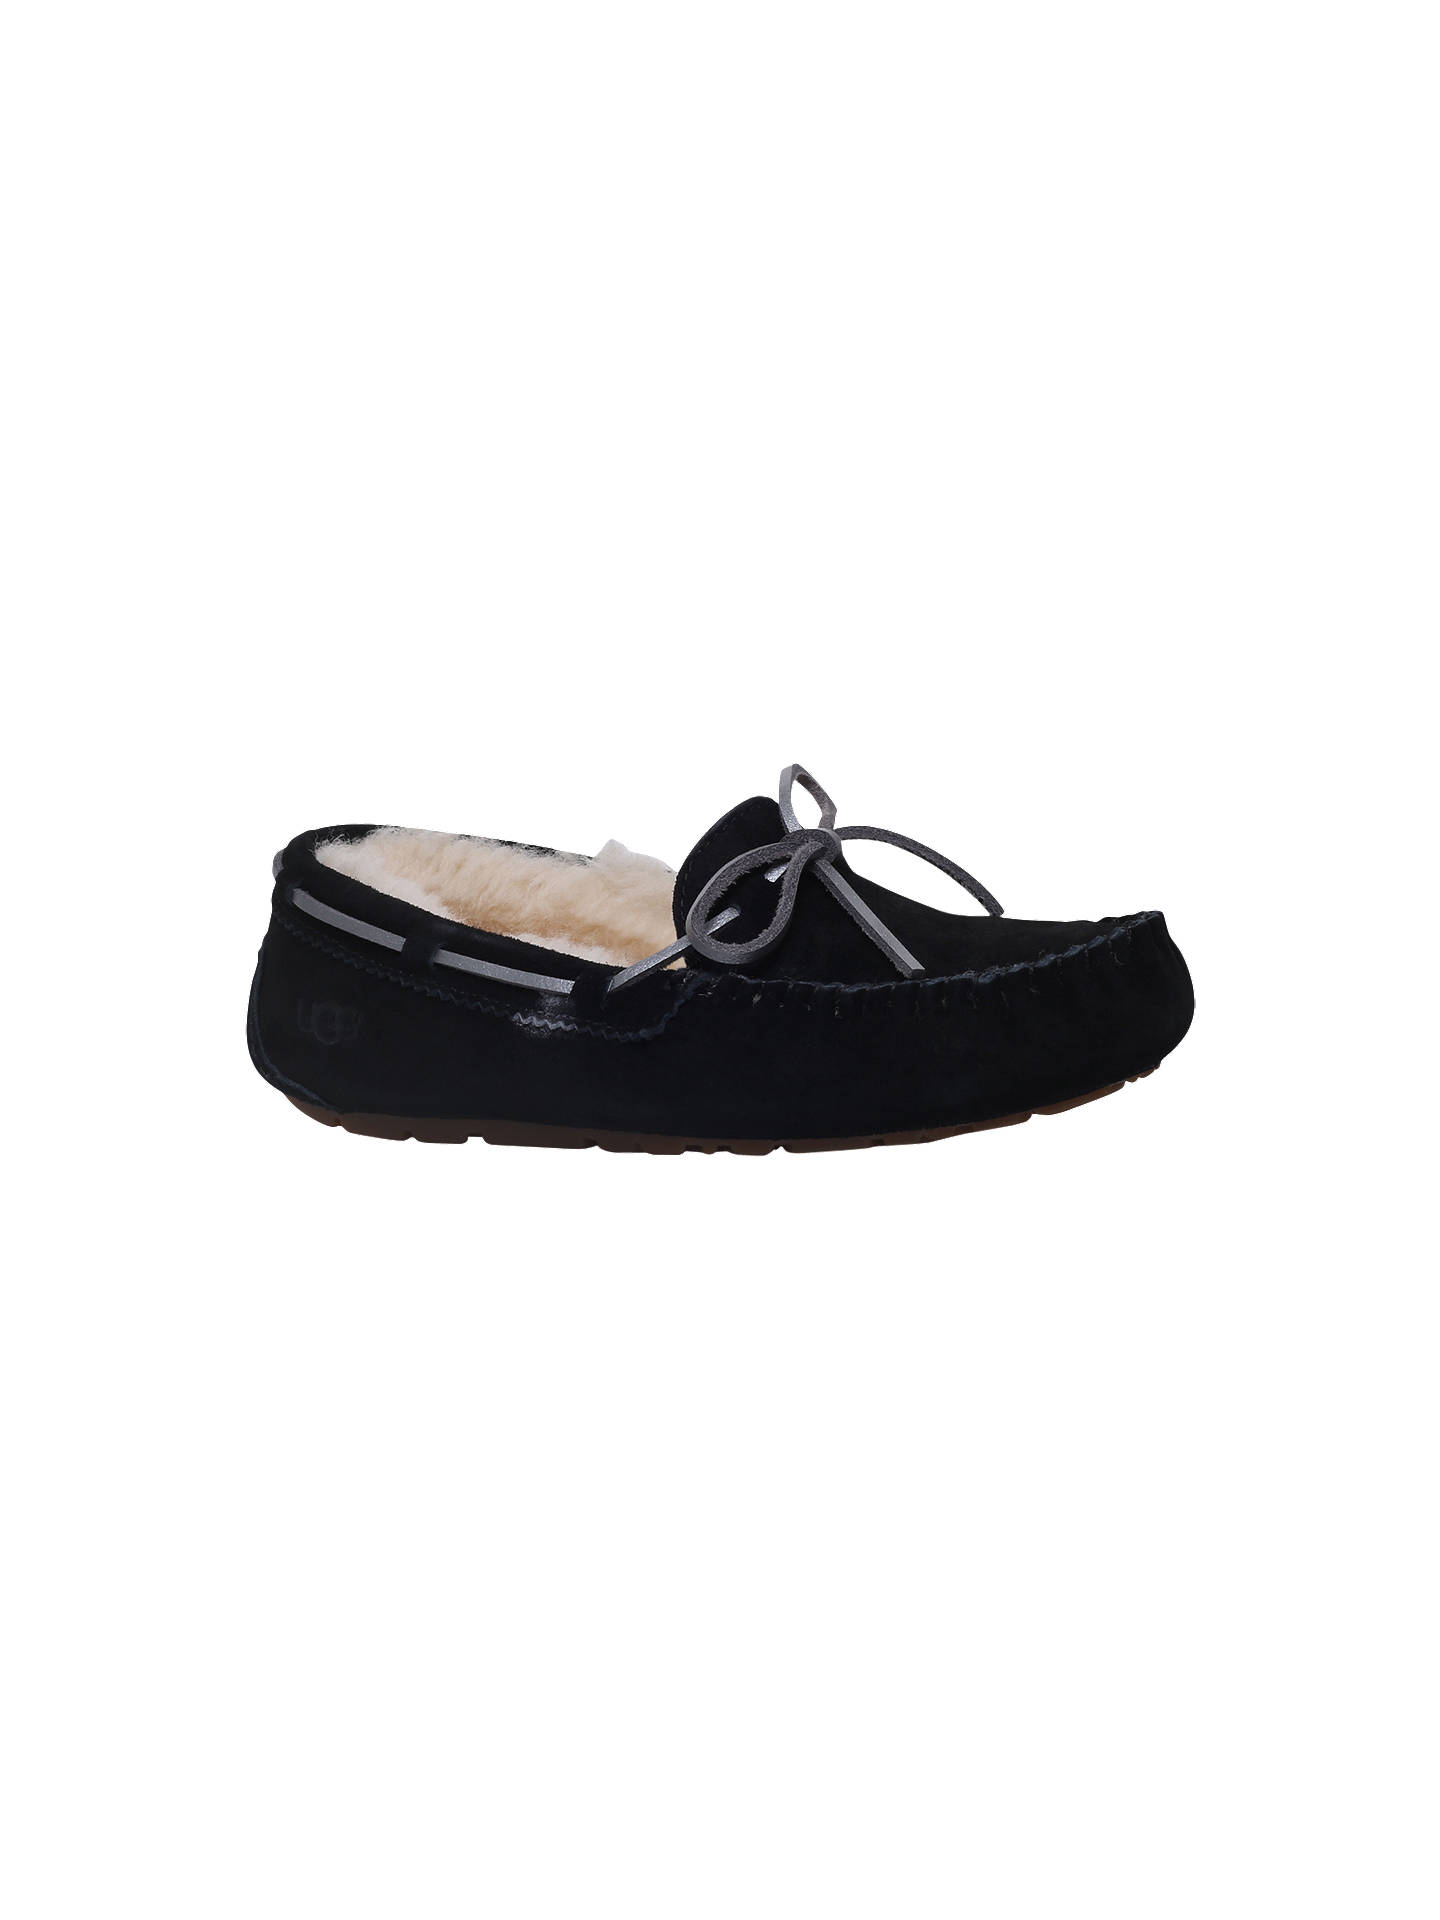 78d5f1ffc5b UGG Dakota Moccasin Slippers, Black at John Lewis & Partners